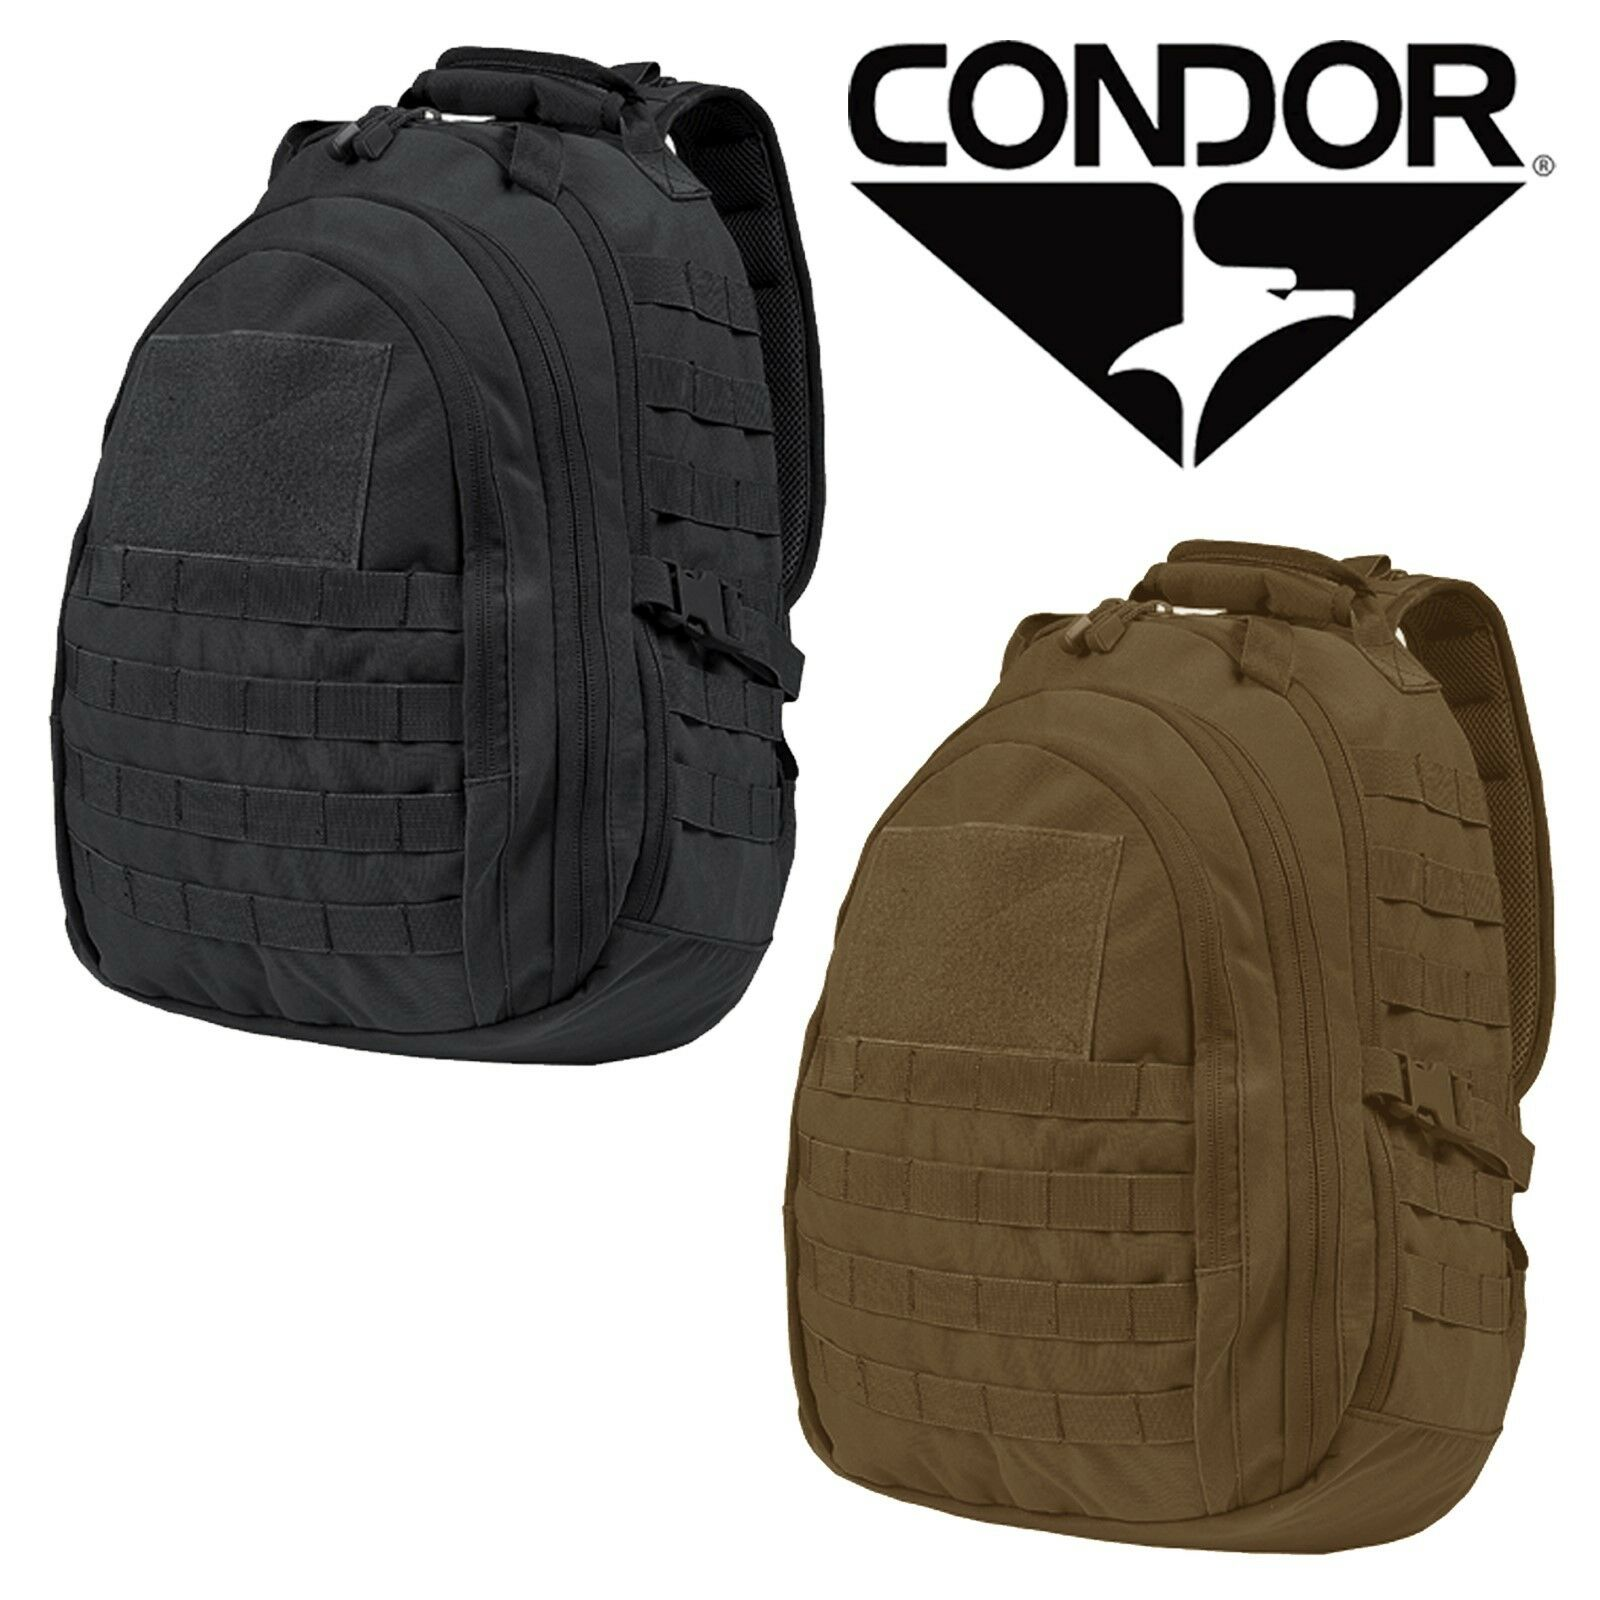 Condor 140 Tactical MOLLE PALS Ambidextrous Shoulder Conceal Carry Sling Bag